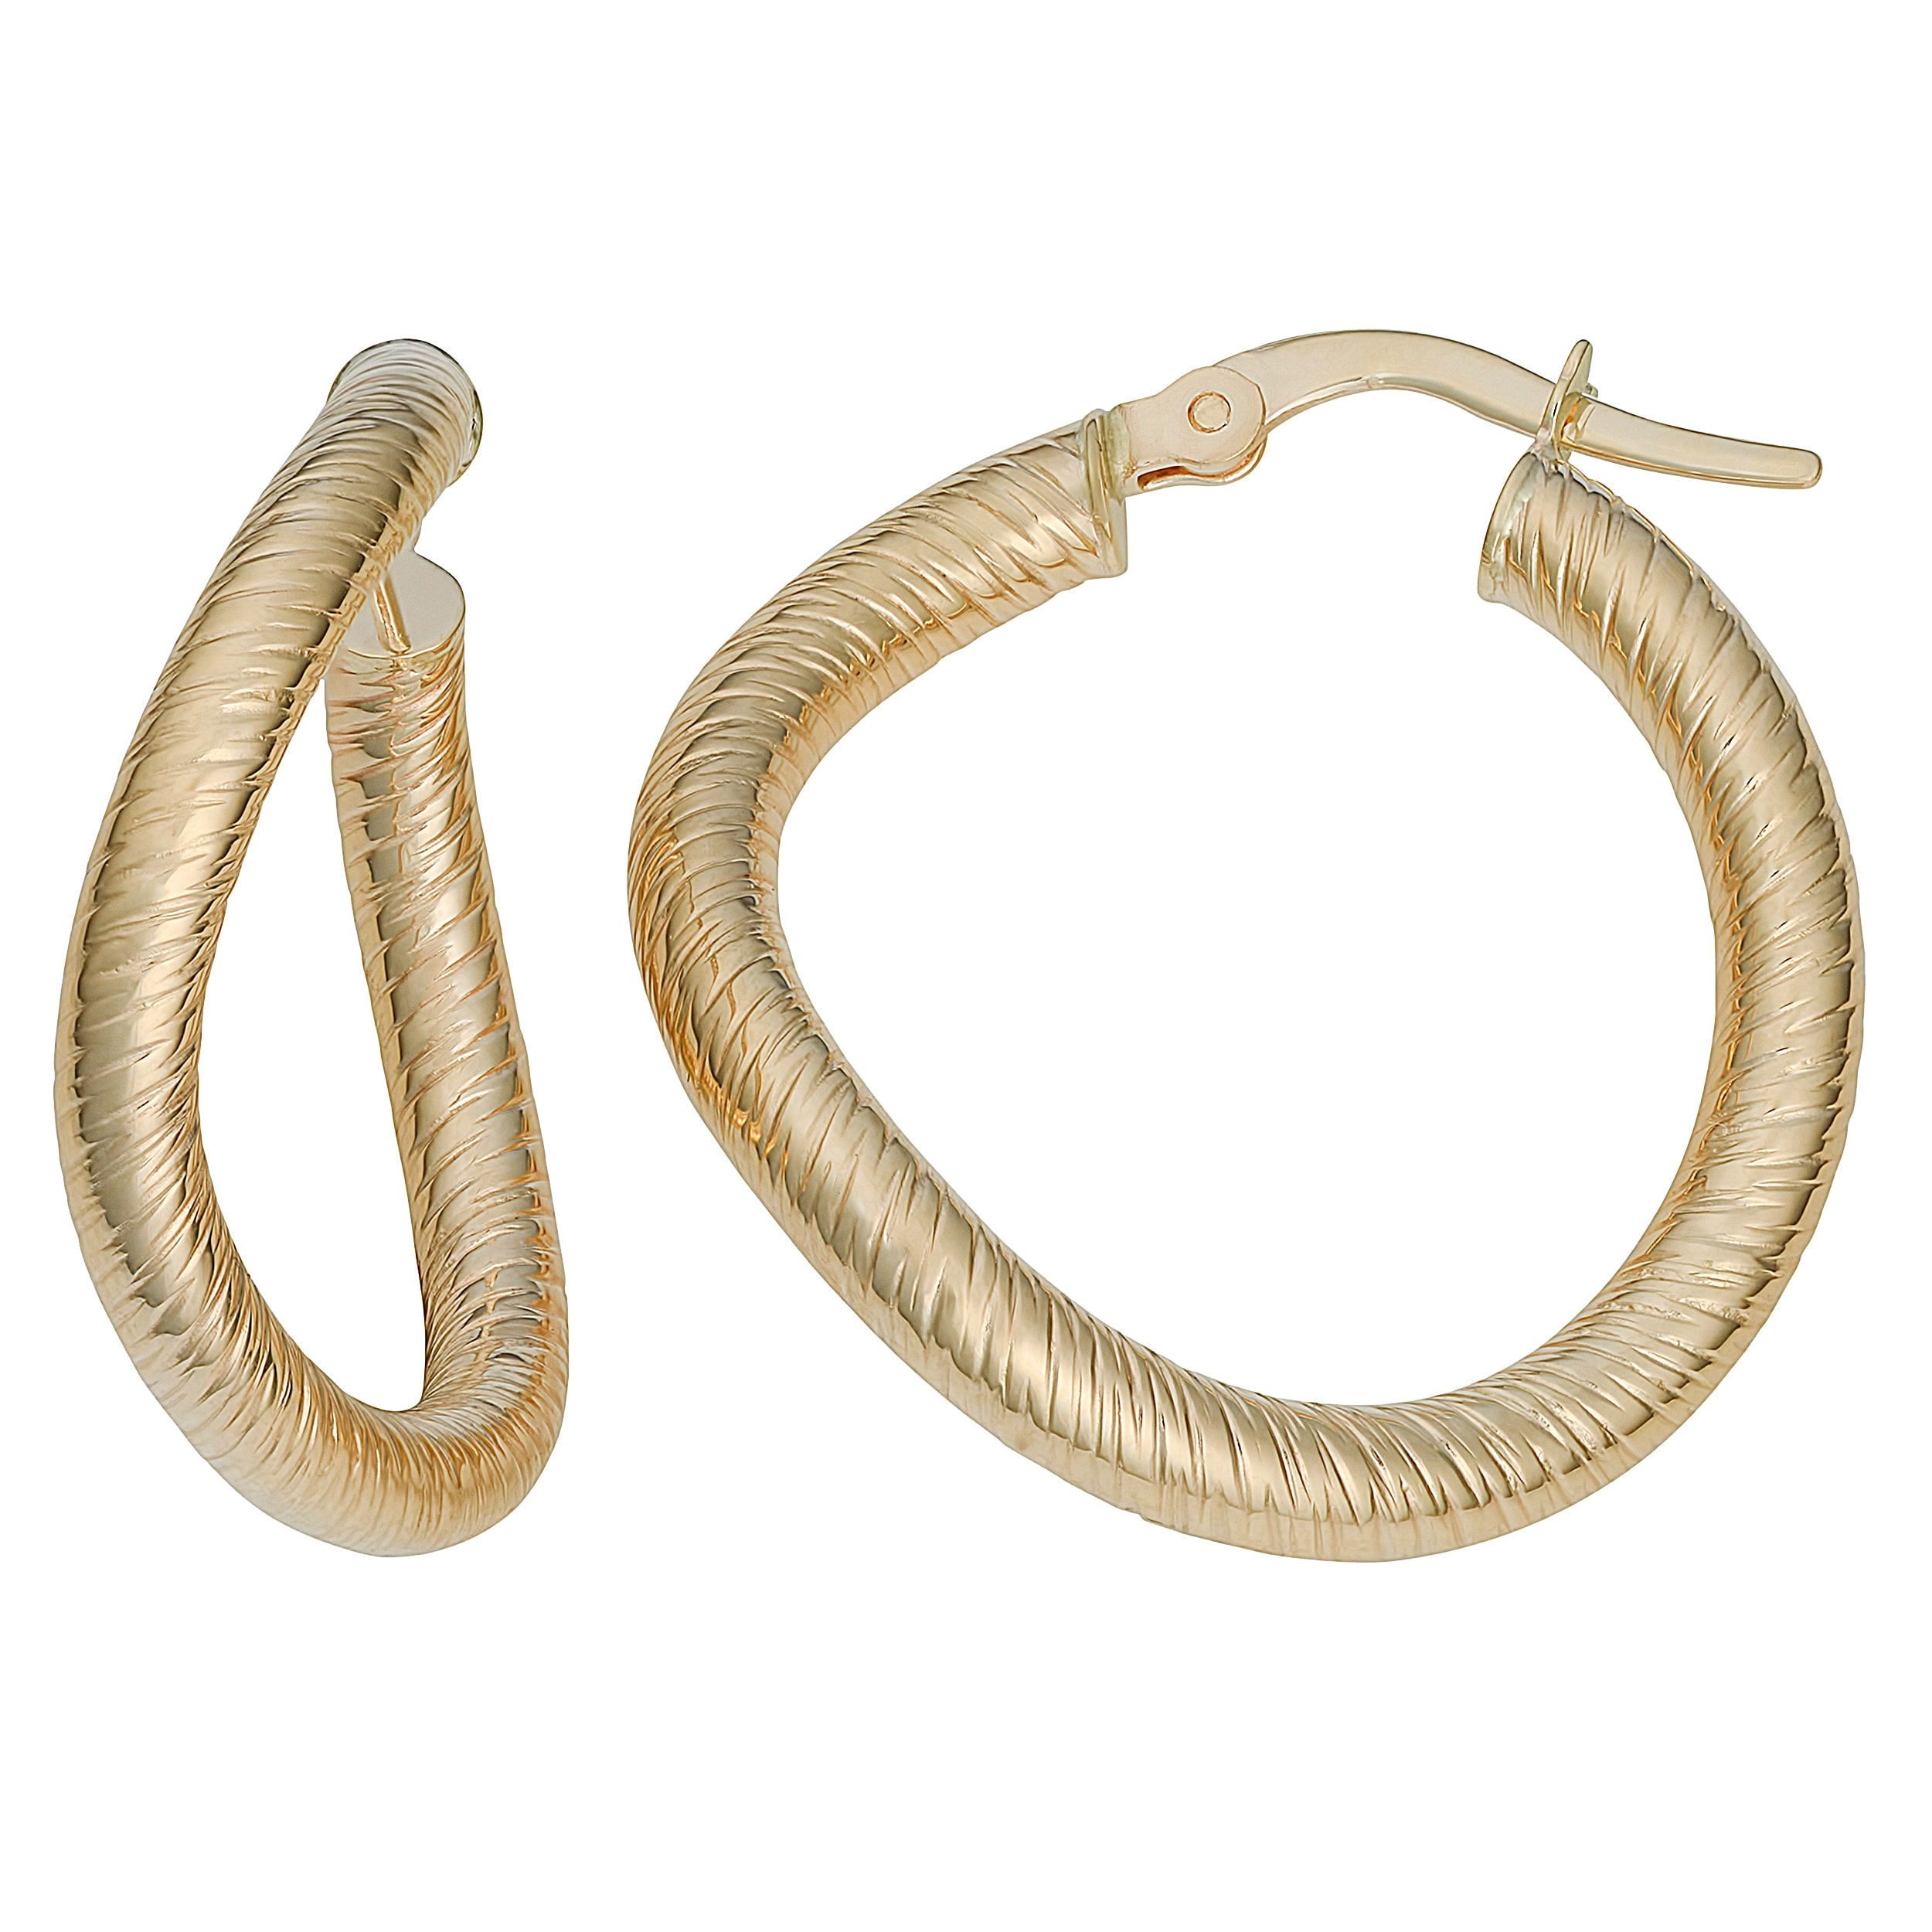 10K Yellow Gold Twisted 41mm Round Hinged Hoop Earrings